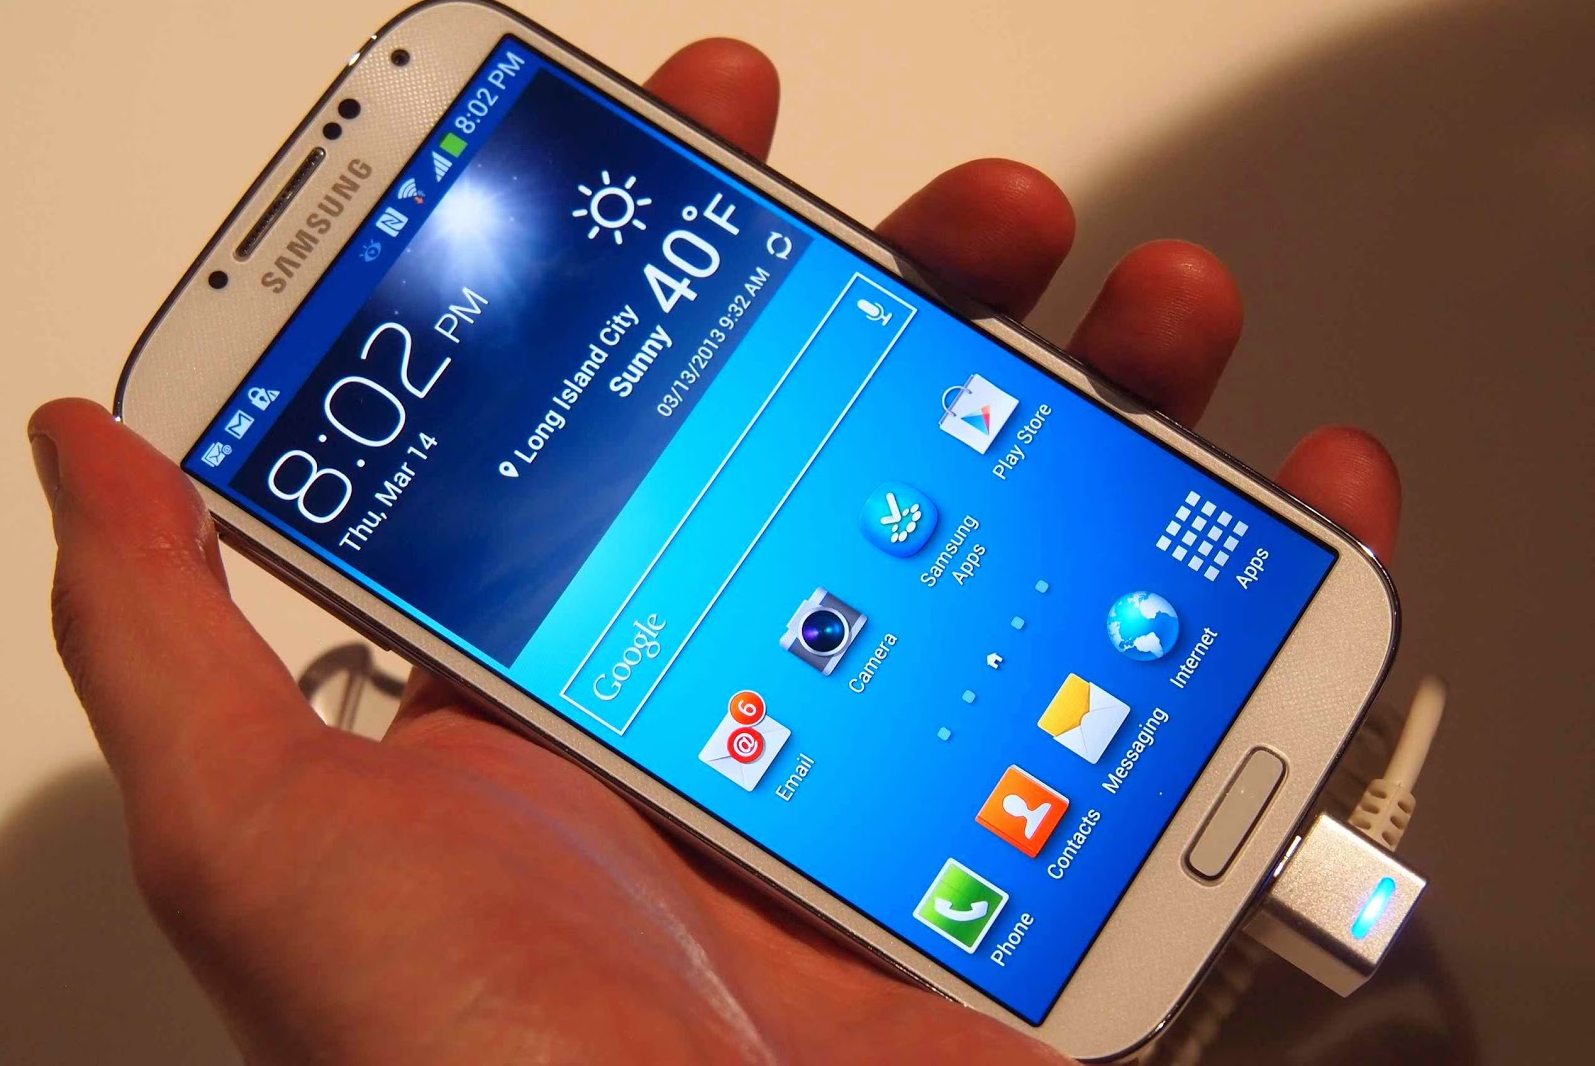 How to unlock galaxy S5